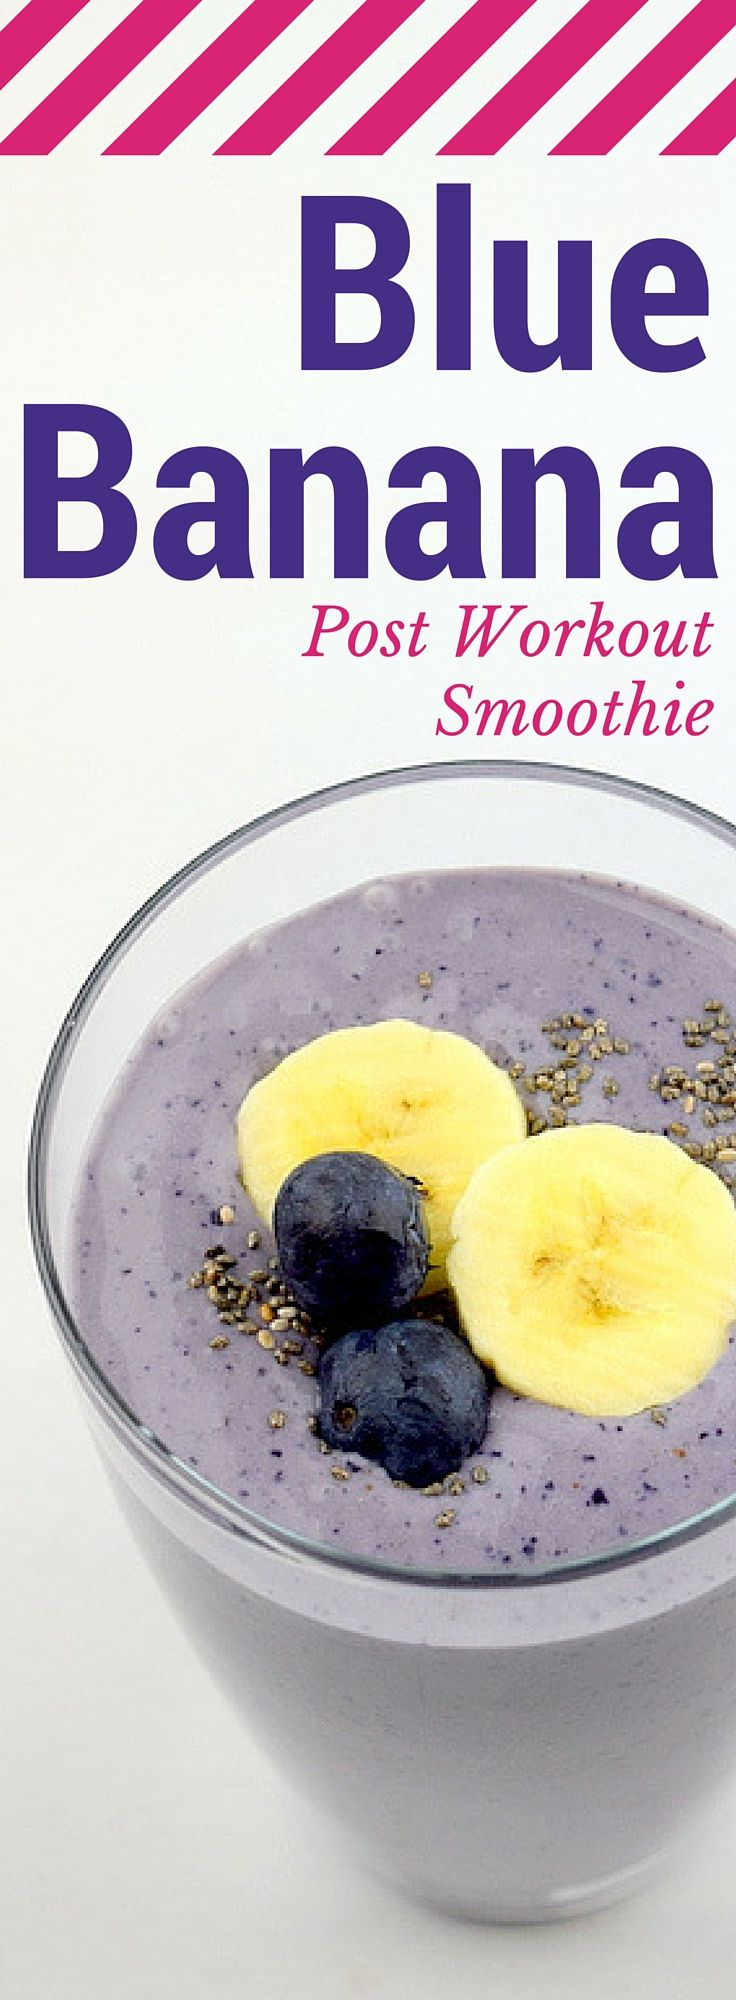 Blue Banana Post Workout Smoothie || From Blenditup.com